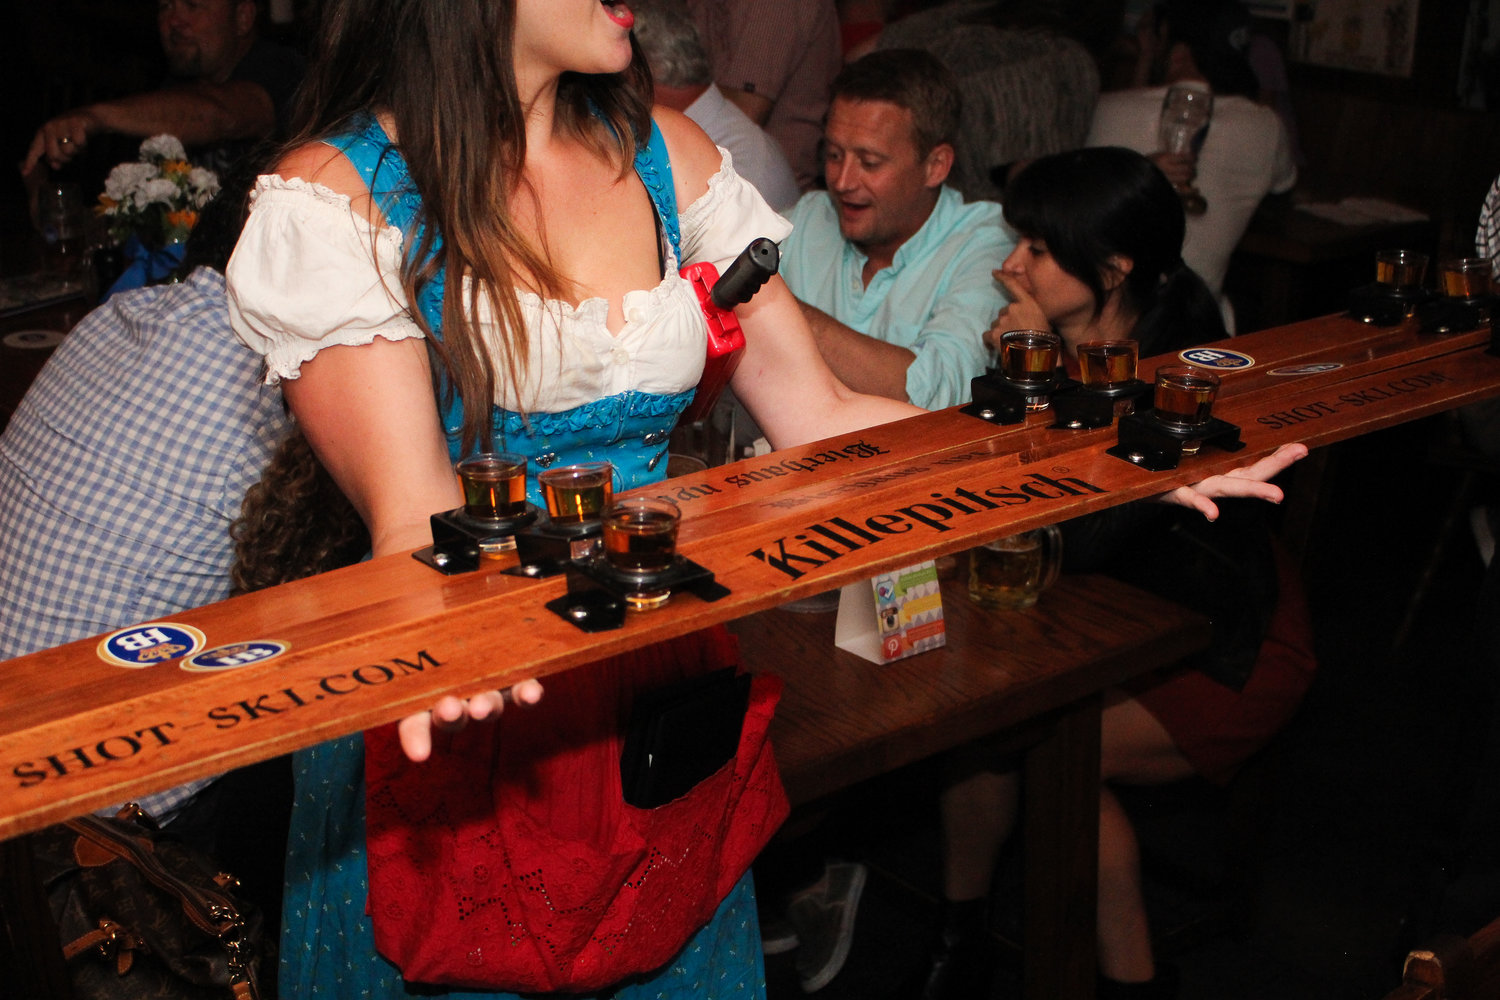 1, 2, 3 Shotski! - At the count of three and the sound of the cow bell, throw back that shotski alongside three of your best buds.